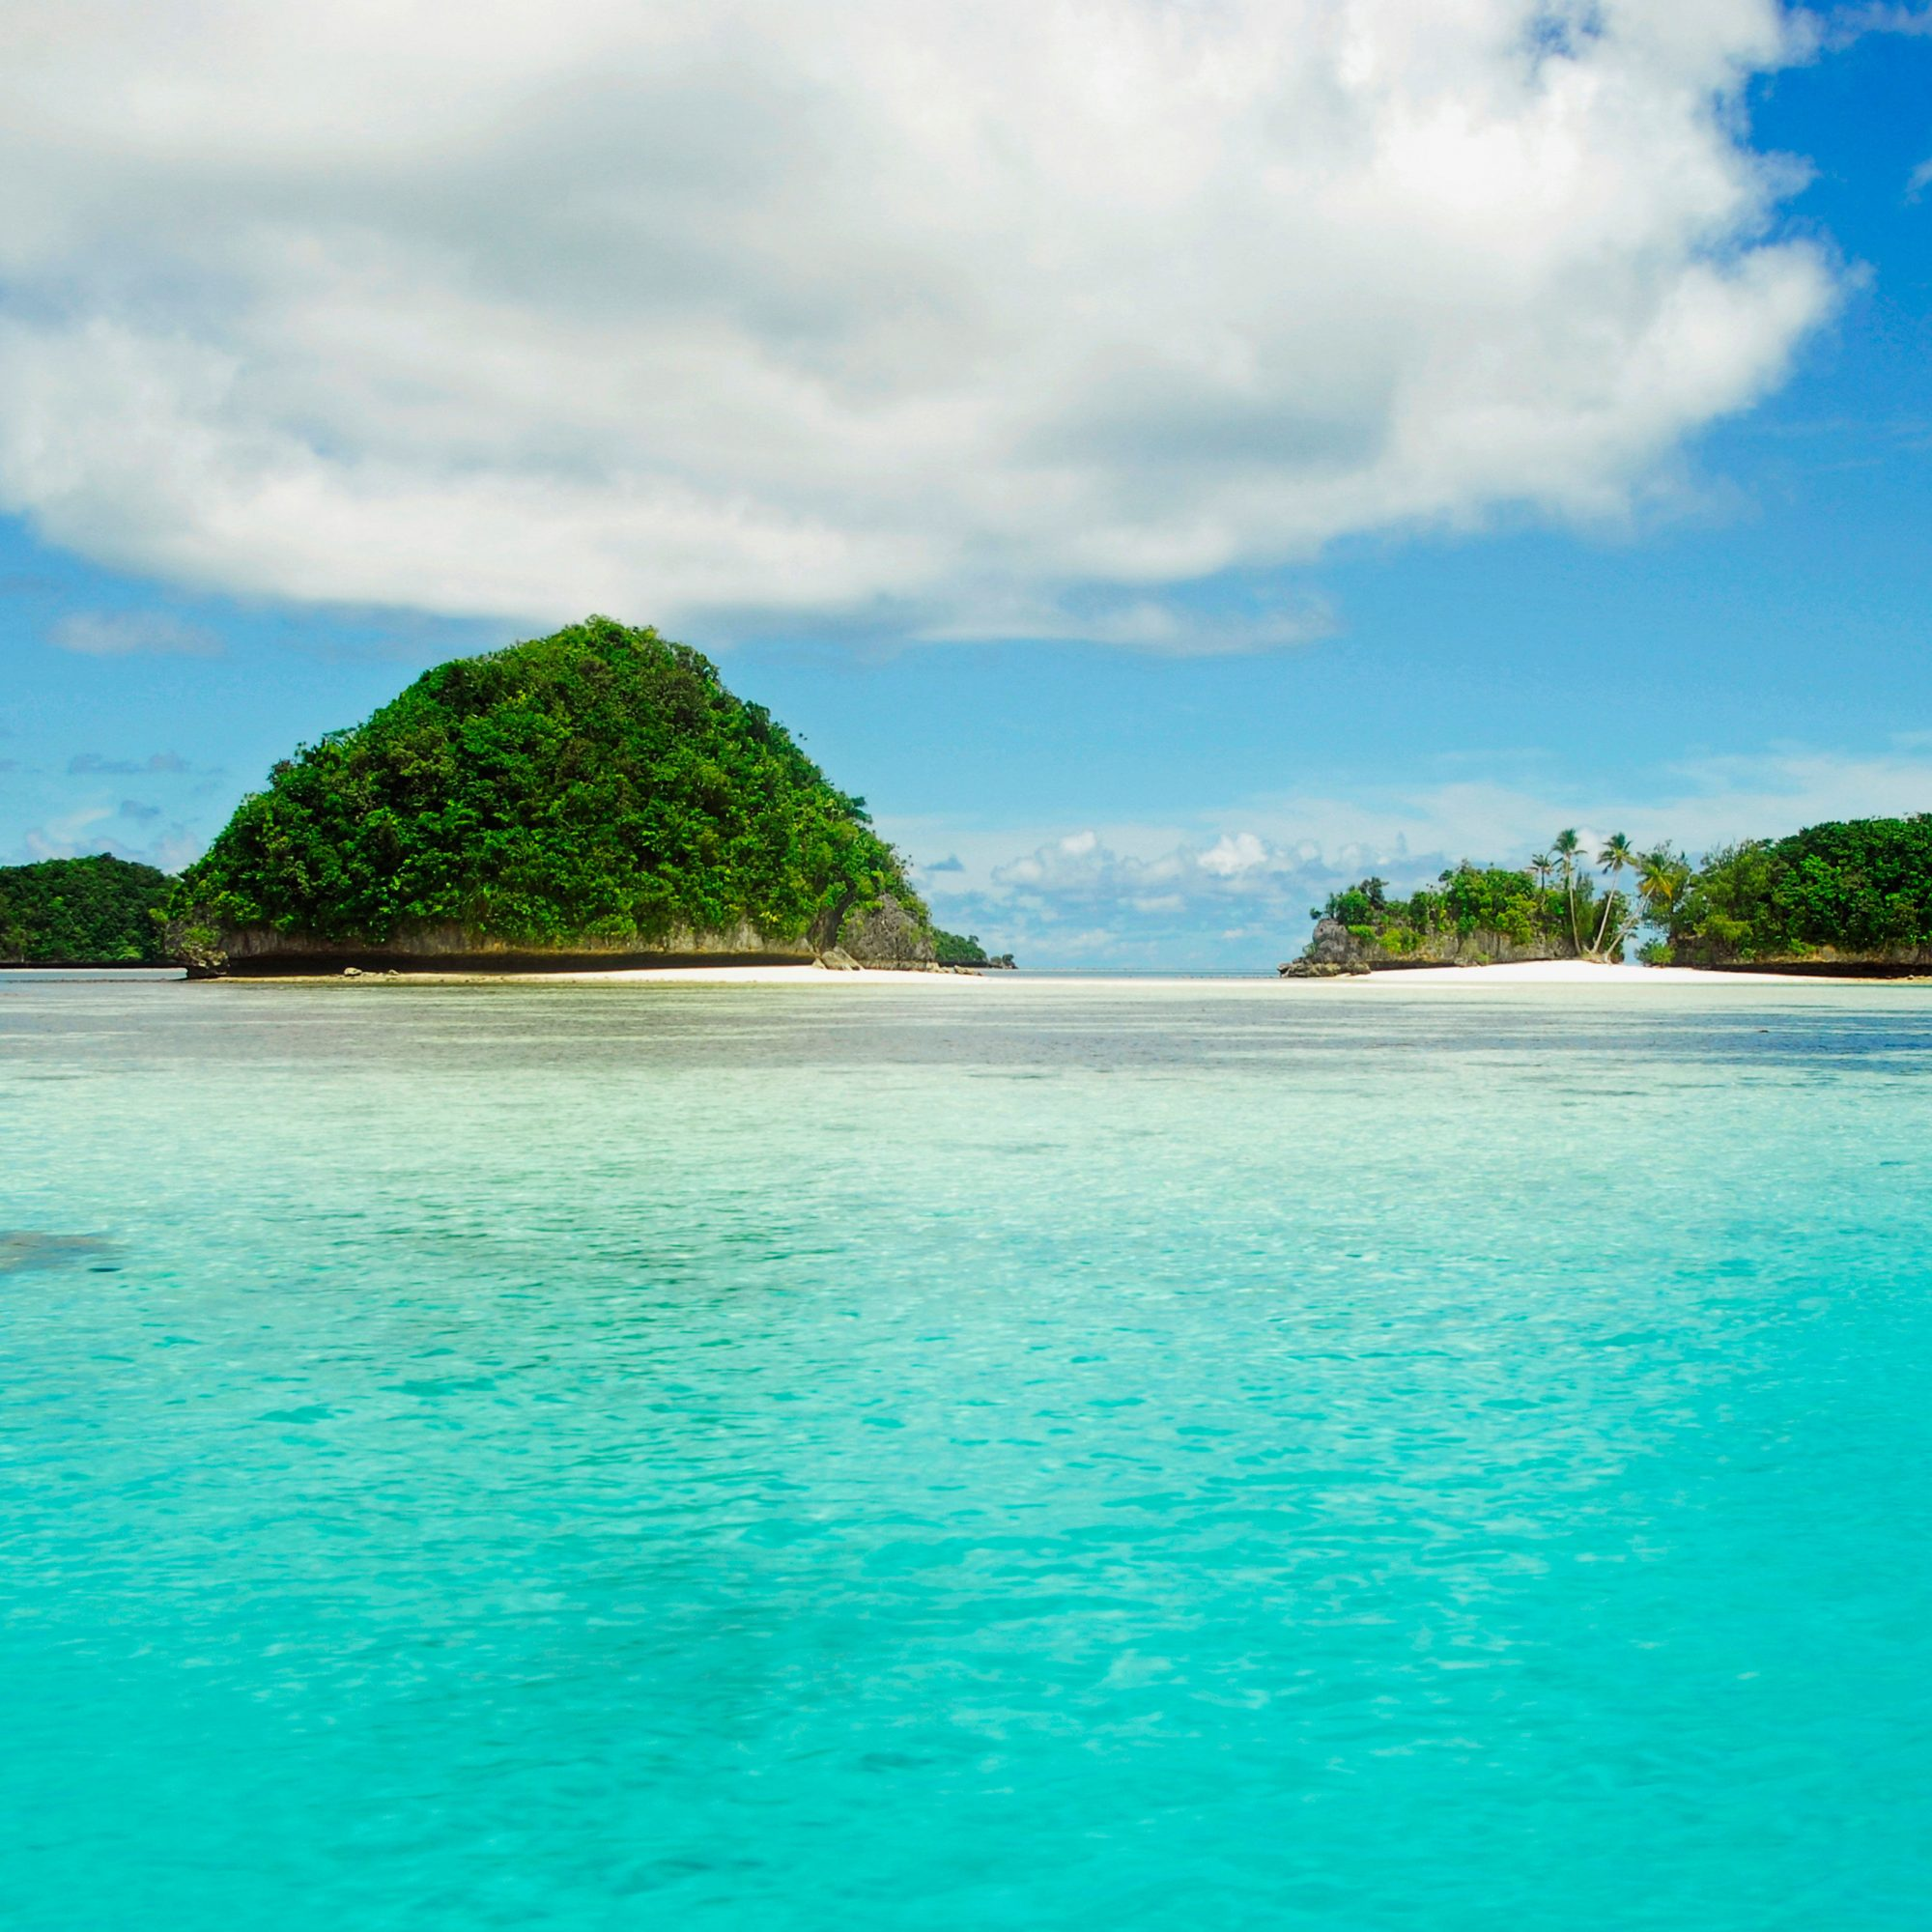 """Why to go: It's not called """"the underwater Serengeti"""" for nothing. With world-class dive sites, this 500-island archipelago in Micronesia is a lure for divers around the world, and winter is its perfect season (summers are rainy). Above the..."""